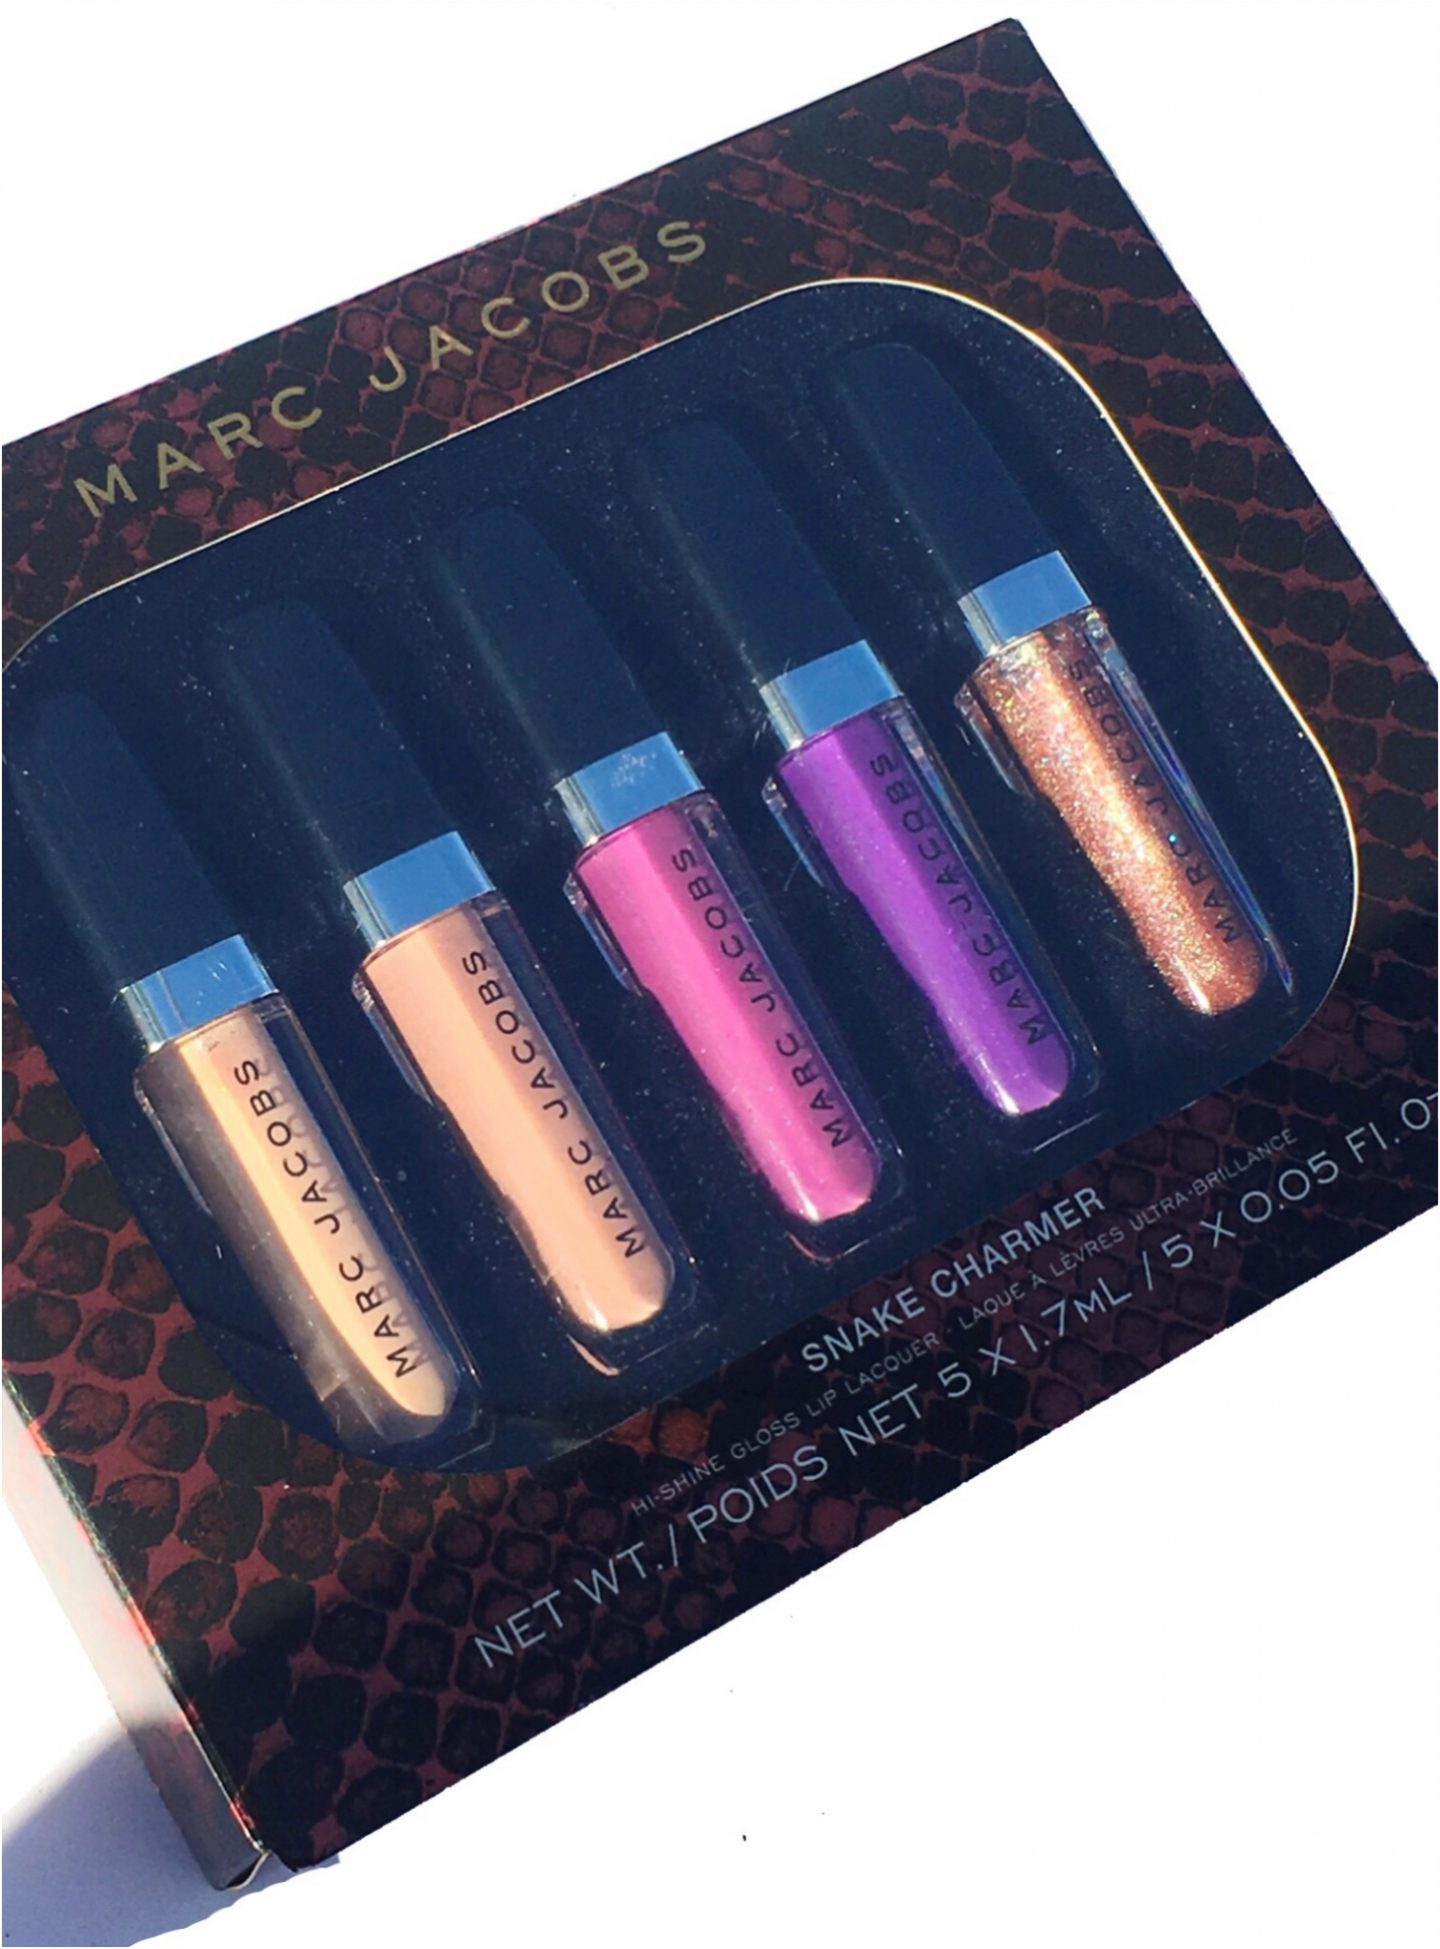 MARC JACOBS SNAKE CHARMER 5 PIECE PETITE ENAMORED HI SHINE GLOSS LIP LACQUER SWATCHES & REVIEW